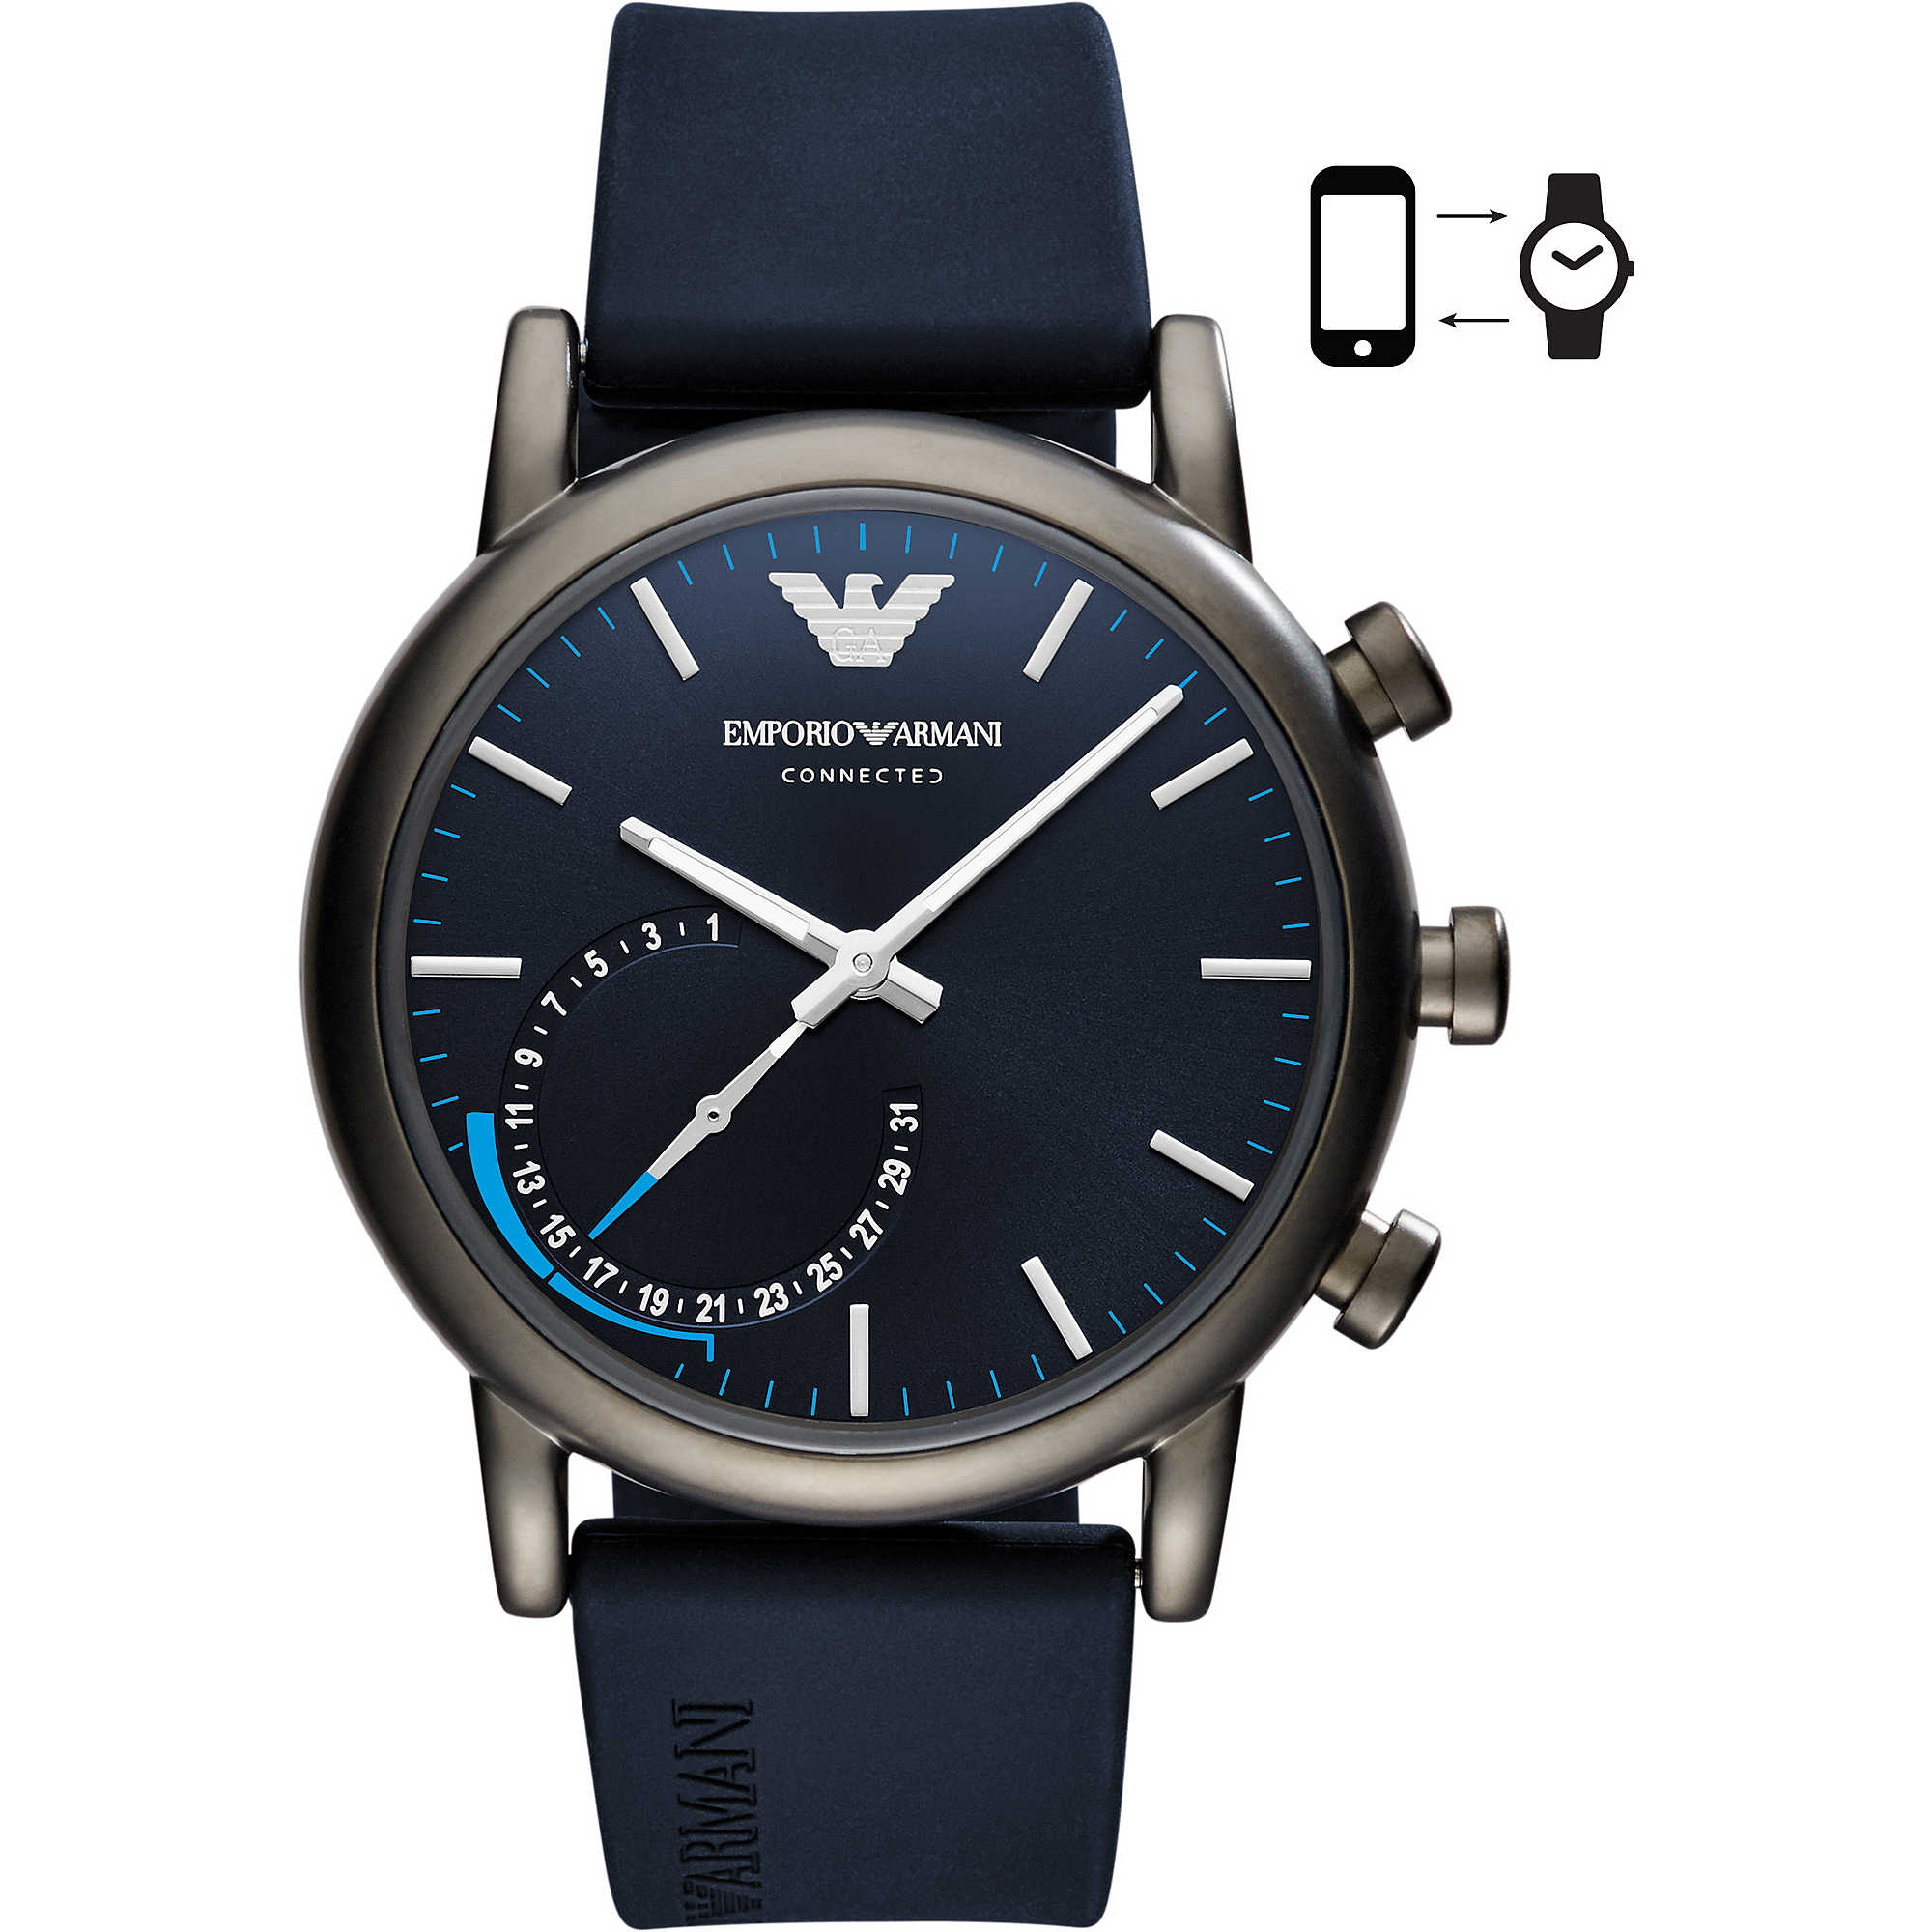 geeks watch that is thing analog design typical halo course much introducing sports this with hybrid android about plus device more of great an seconds like styled look smartwatch mobile kind classic the watches a can